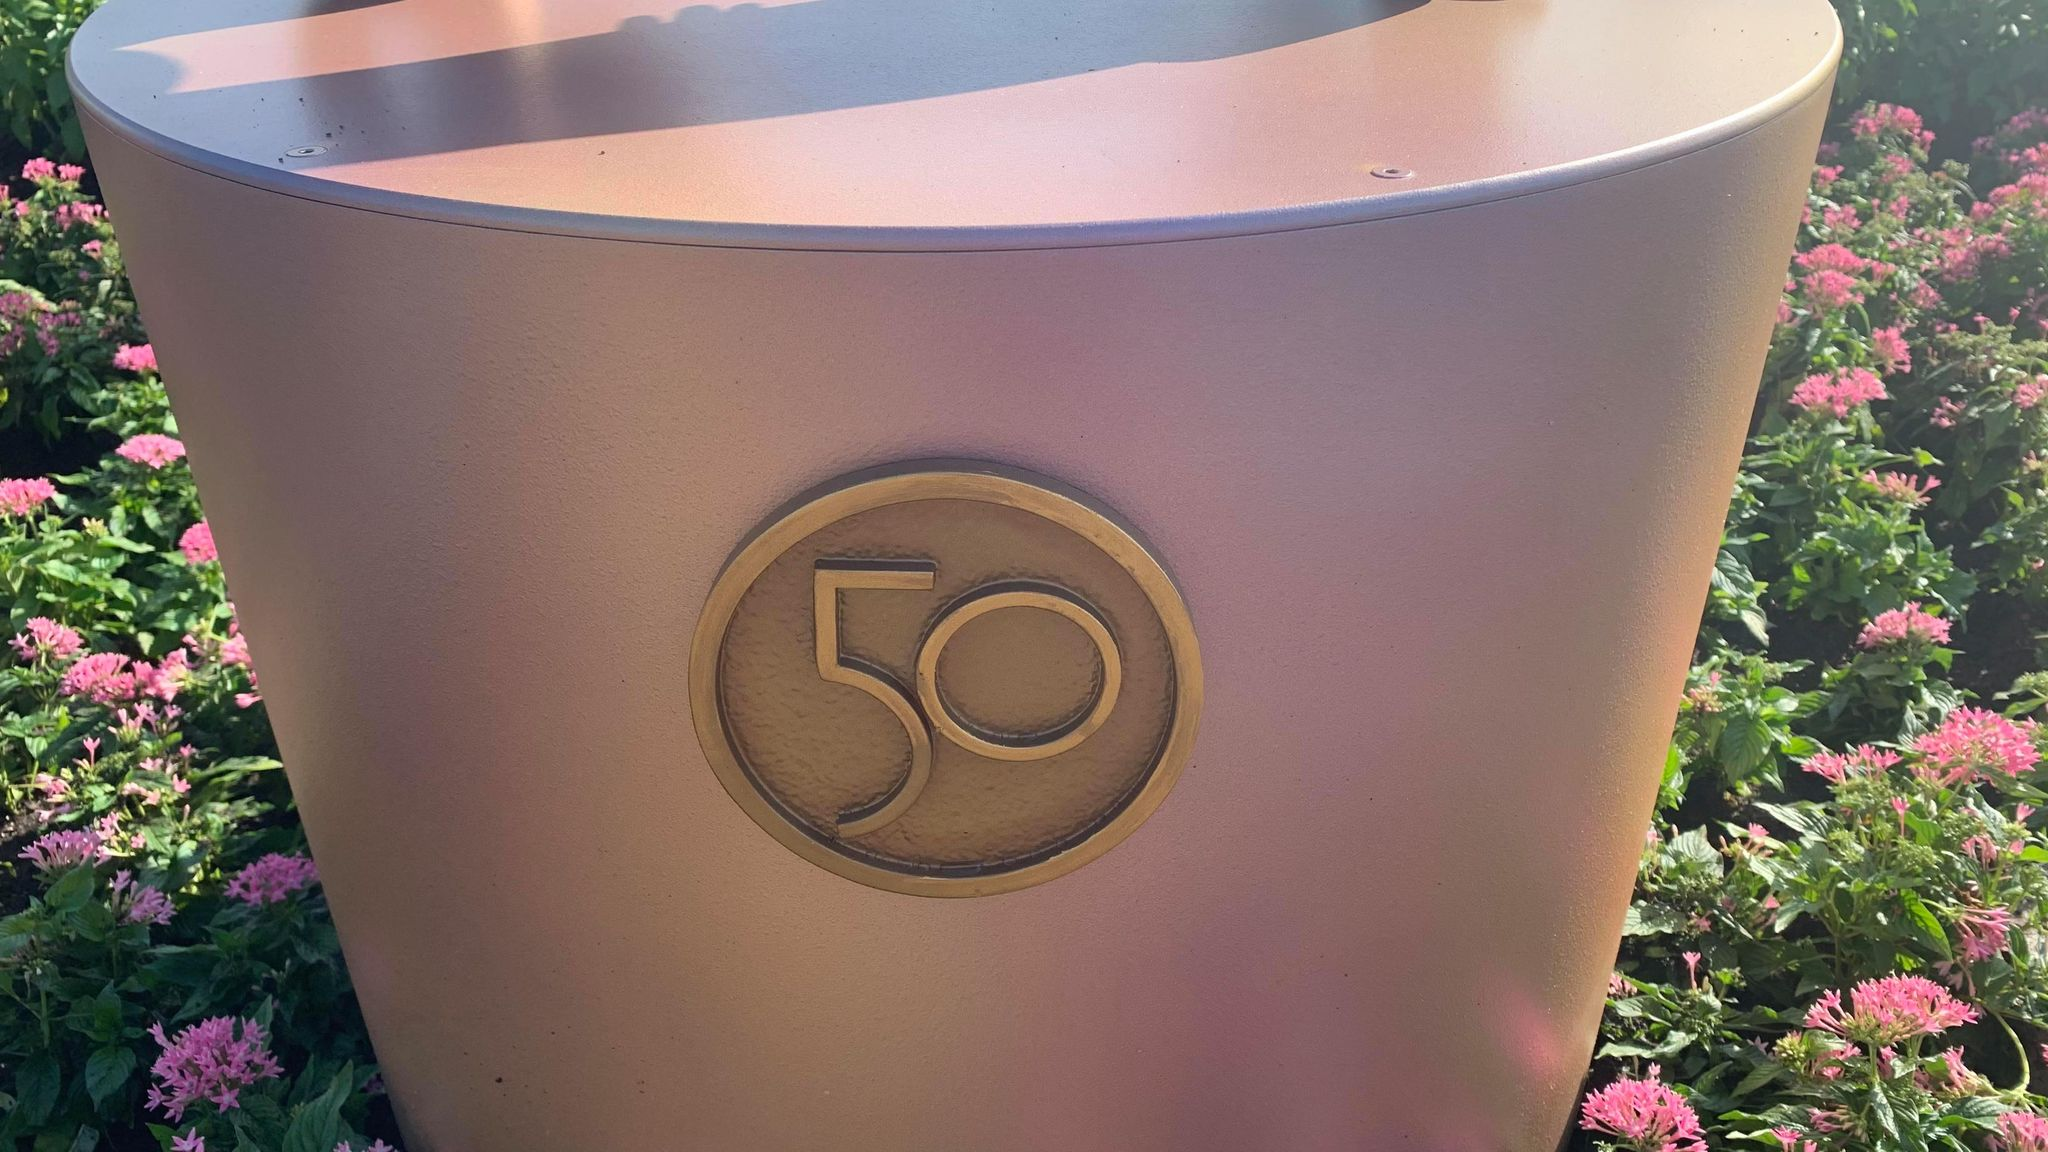 First Look: Disney Fab 50 statues now on display in the Magic Kingdom 15